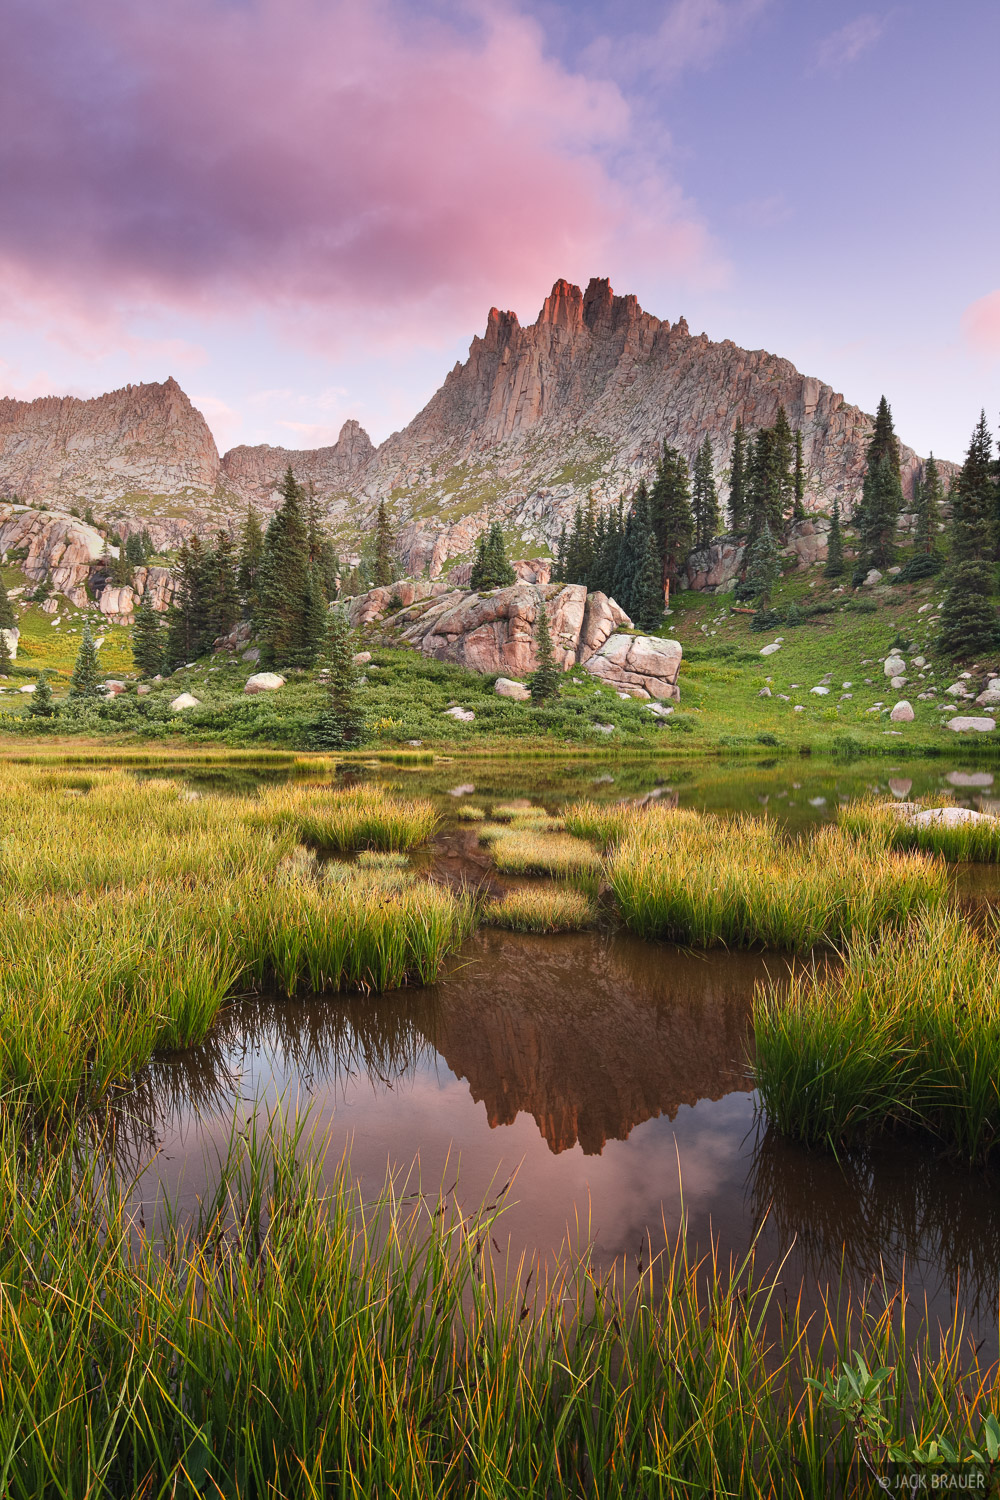 Jagged Mountain reflects in a small pond at sunrise in the Weminuche Wilderness.